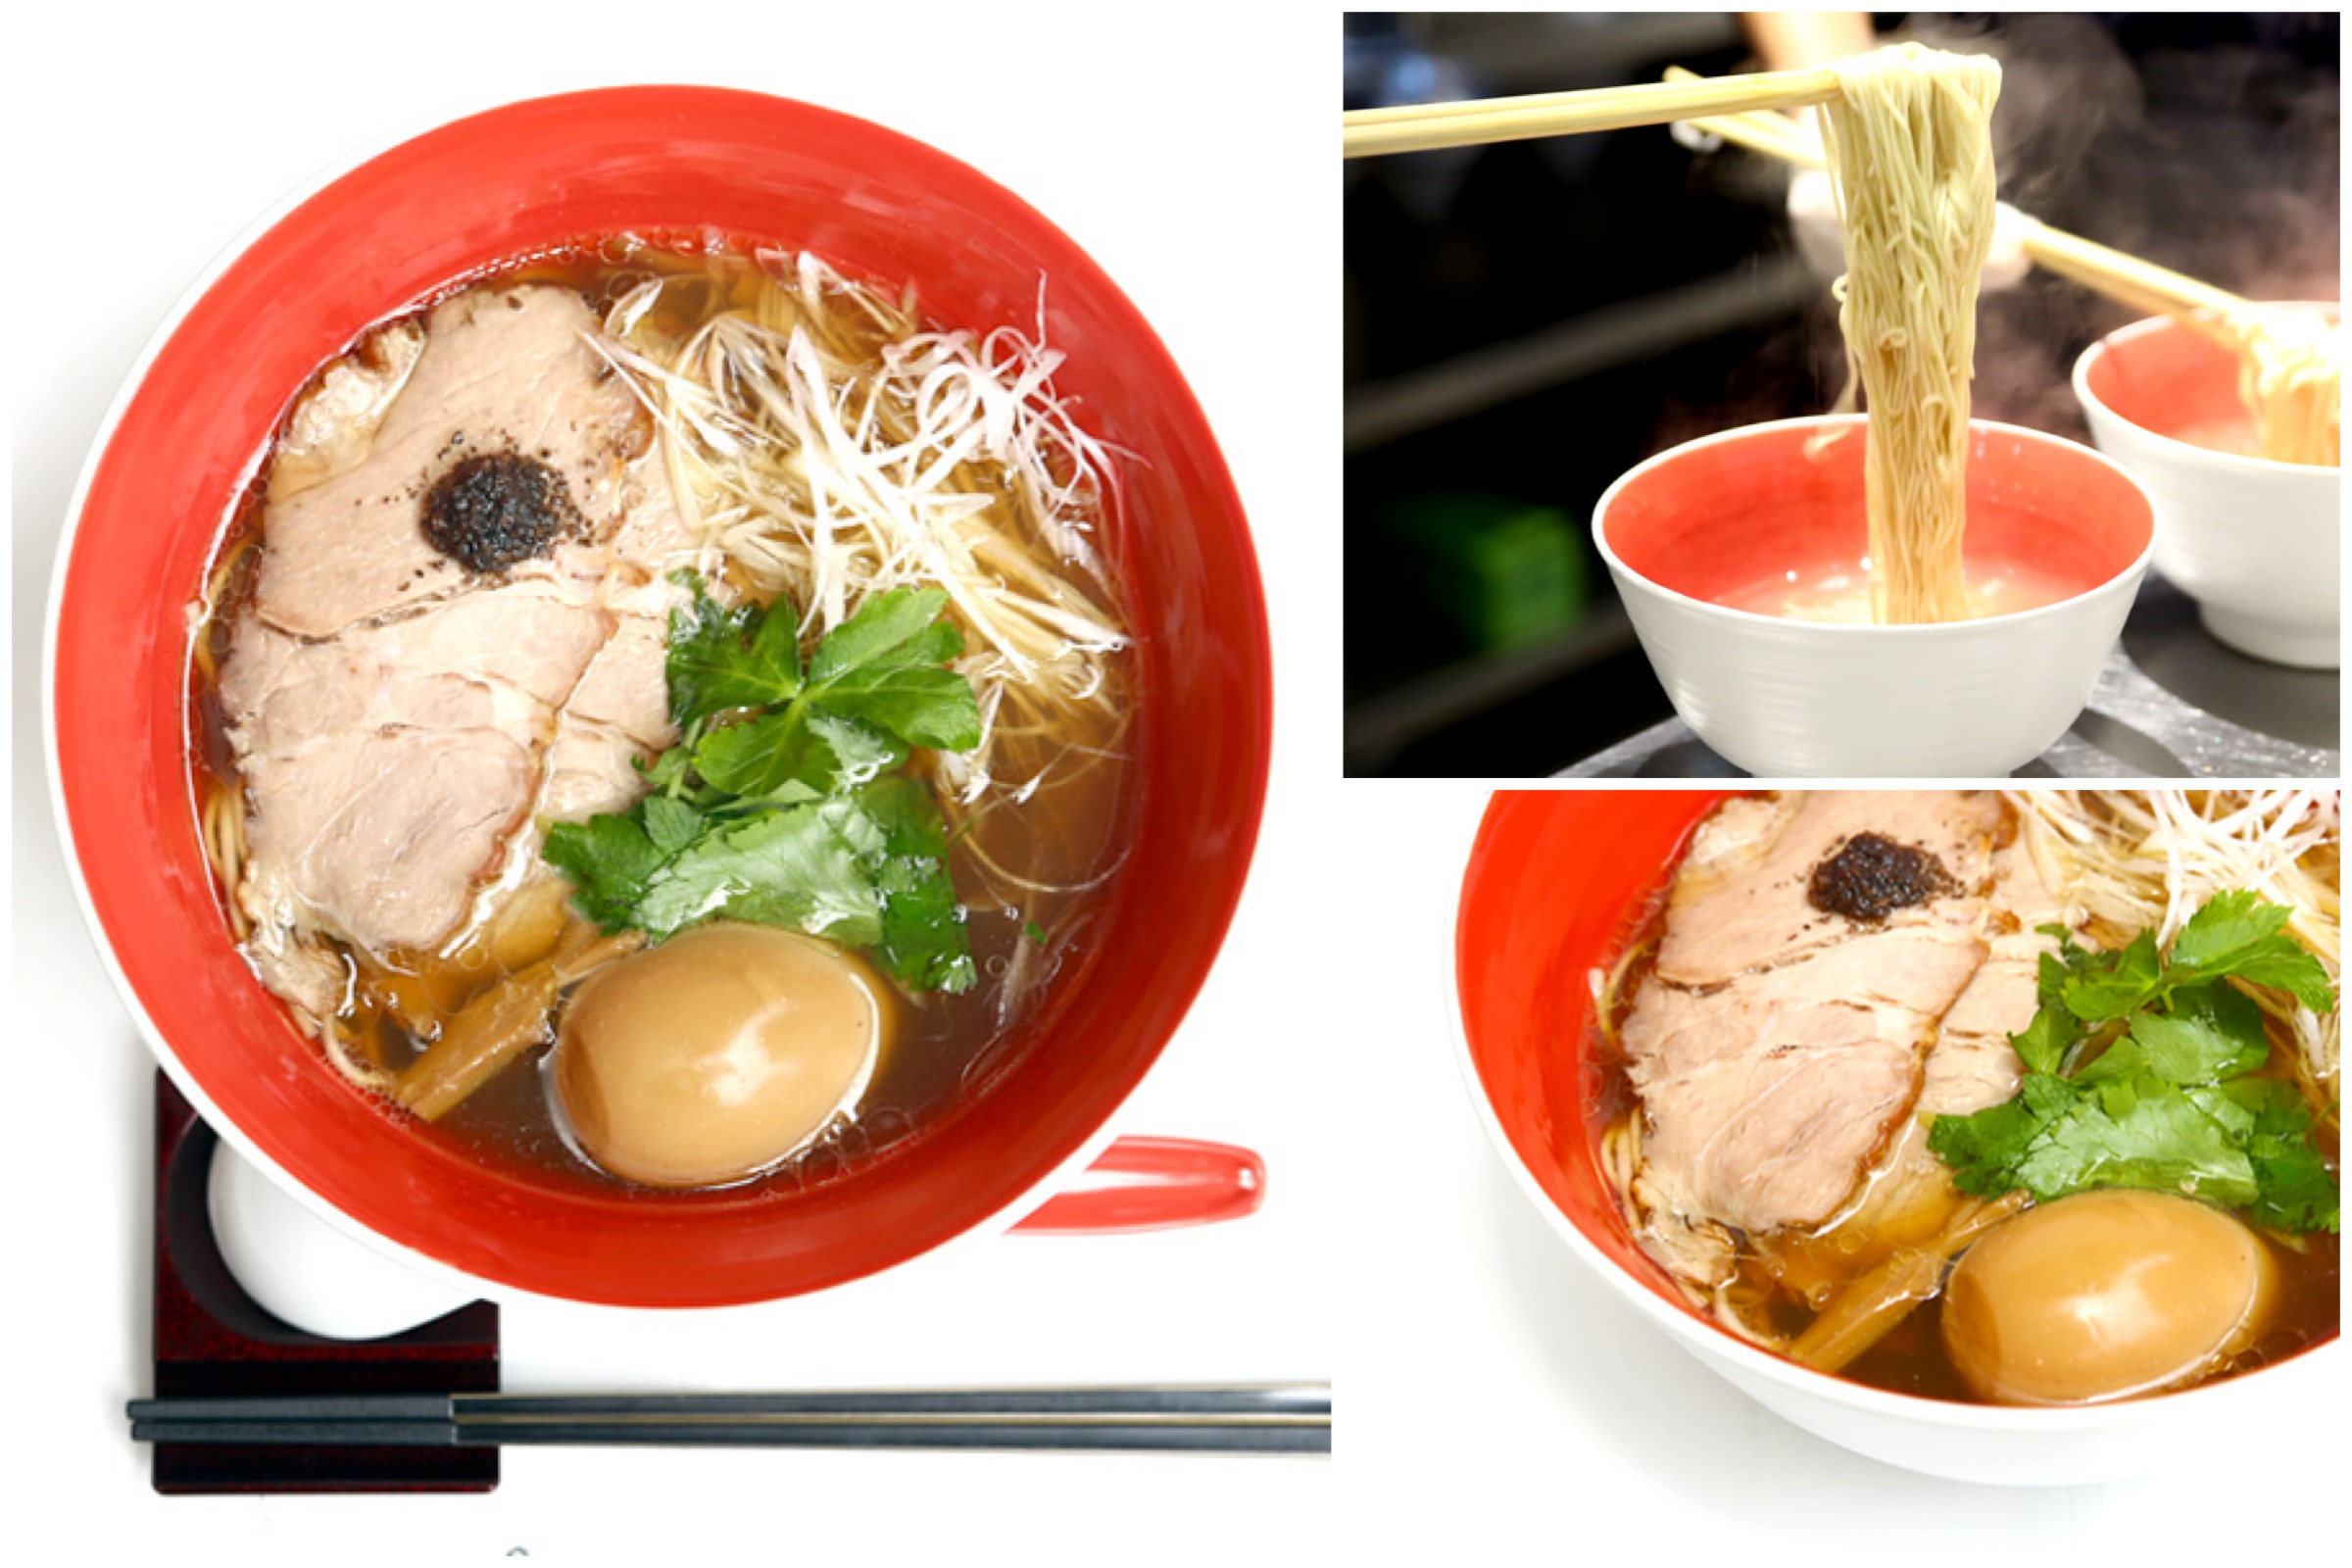 Tsuta Singapore - Michelin Truffle Ramen Received Mixed Reviews. NEW DUCK Ramen Exclusive To Singapore To Be Introduced